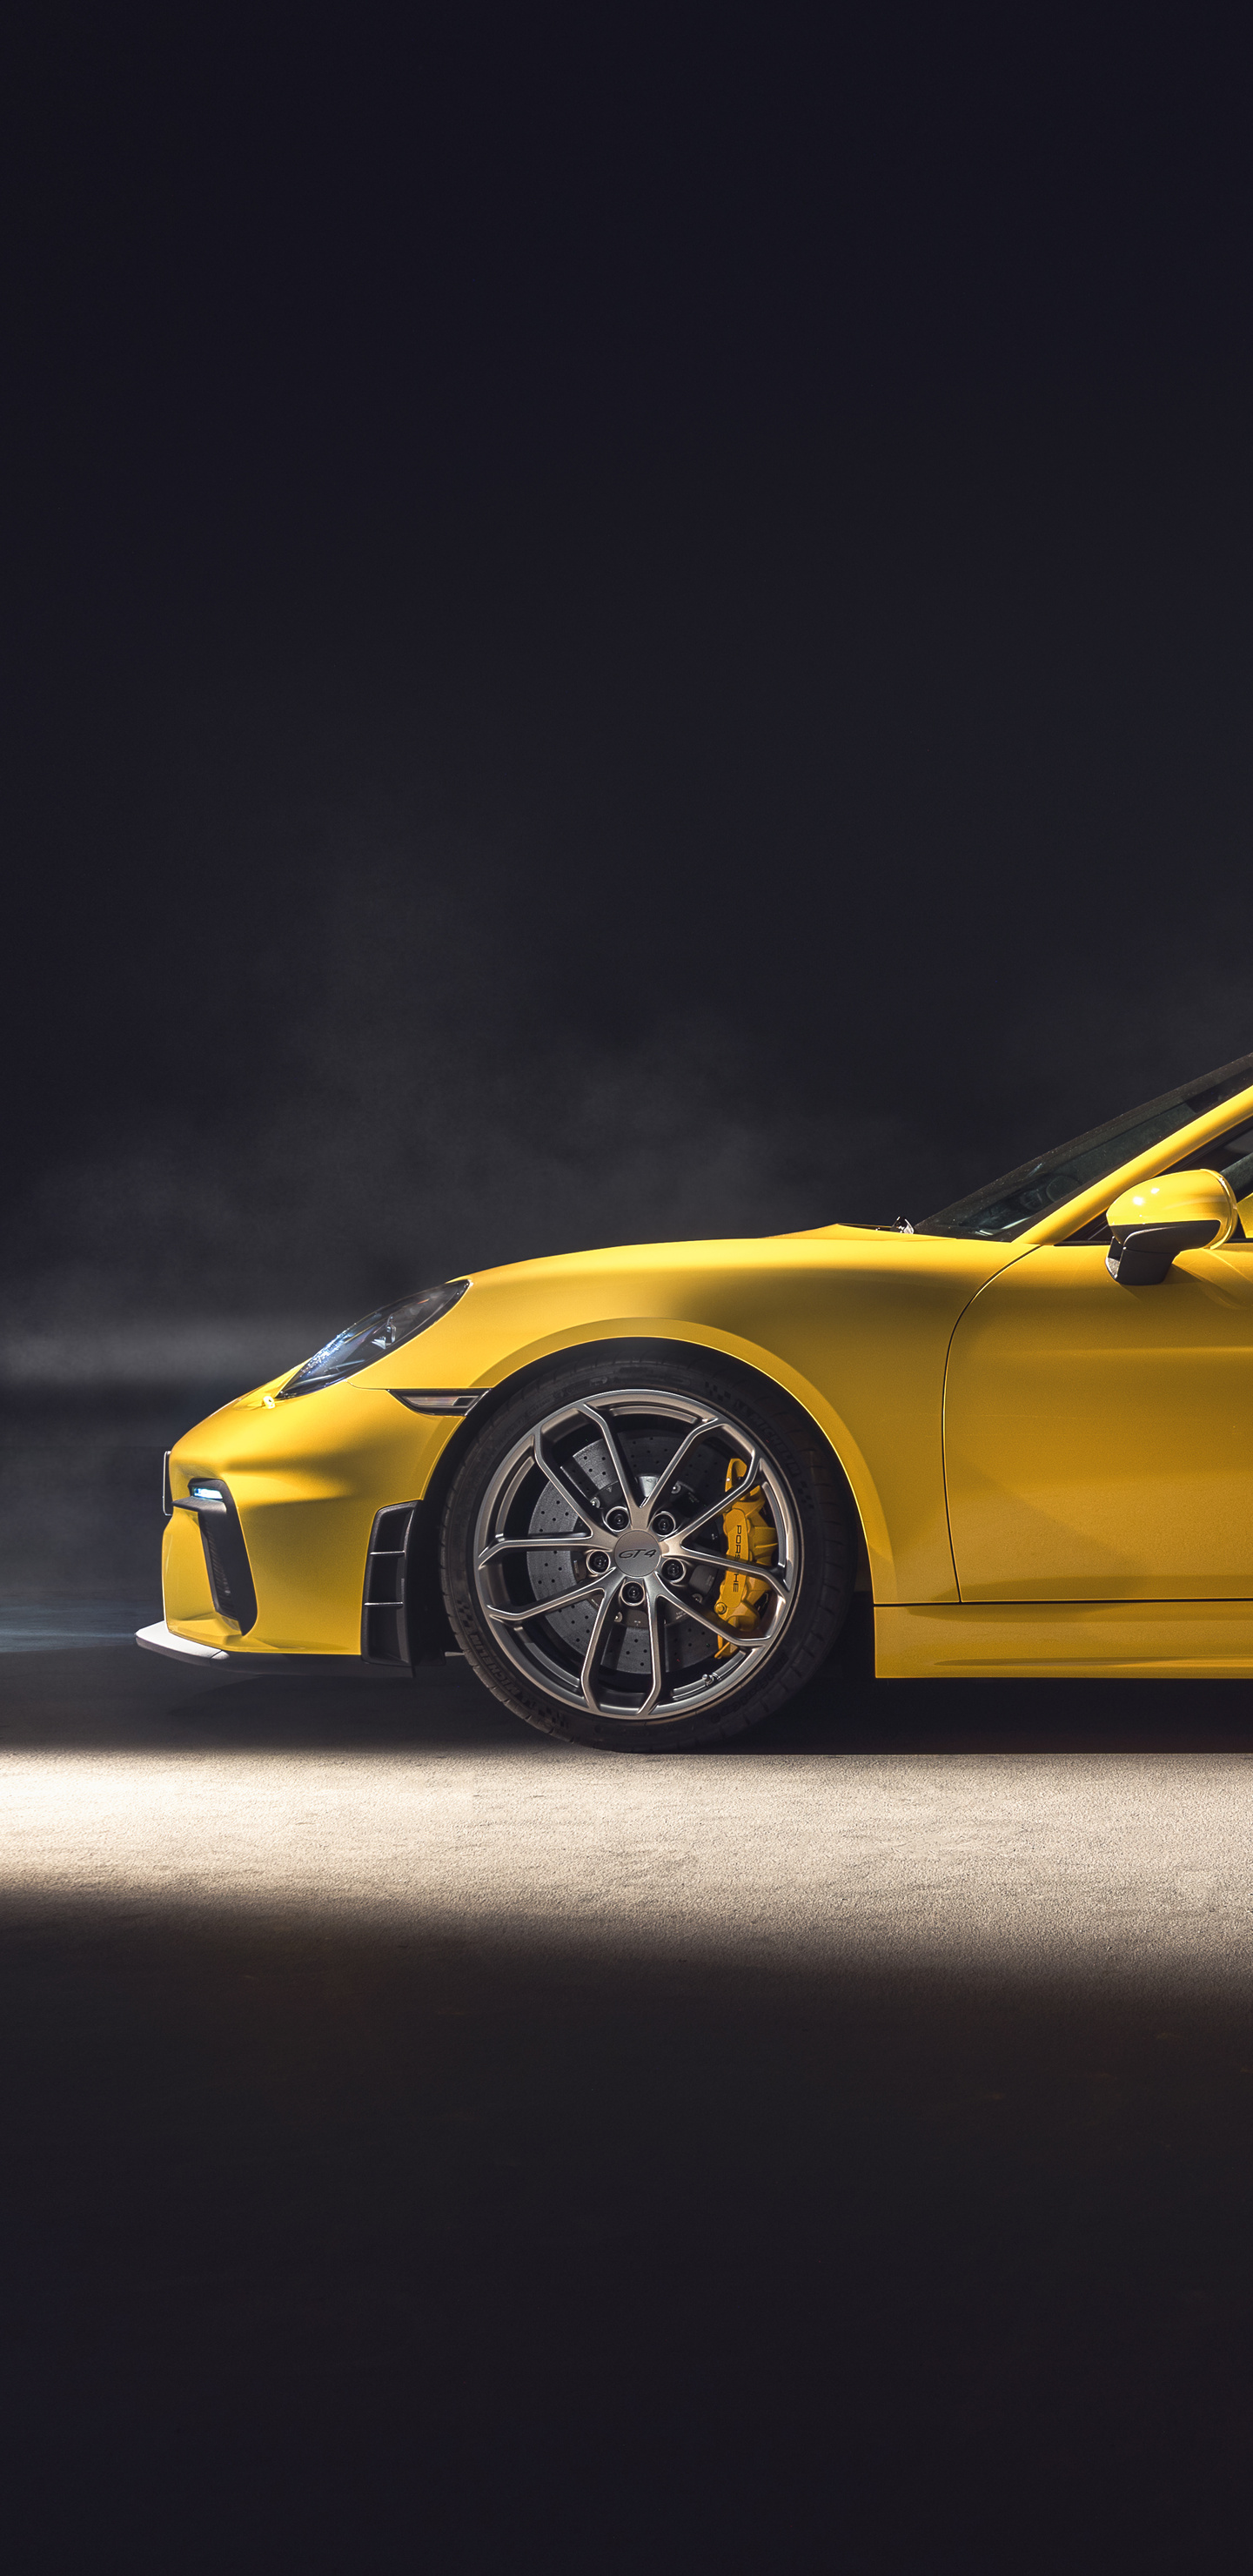 1440x2960 Porsche 718 Cayman Gt4 2019 Samsung Galaxy Note 9 8 S9 S8 S8 Qhd Hd 4k Wallpapers Images Backgrounds Photos And Pictures